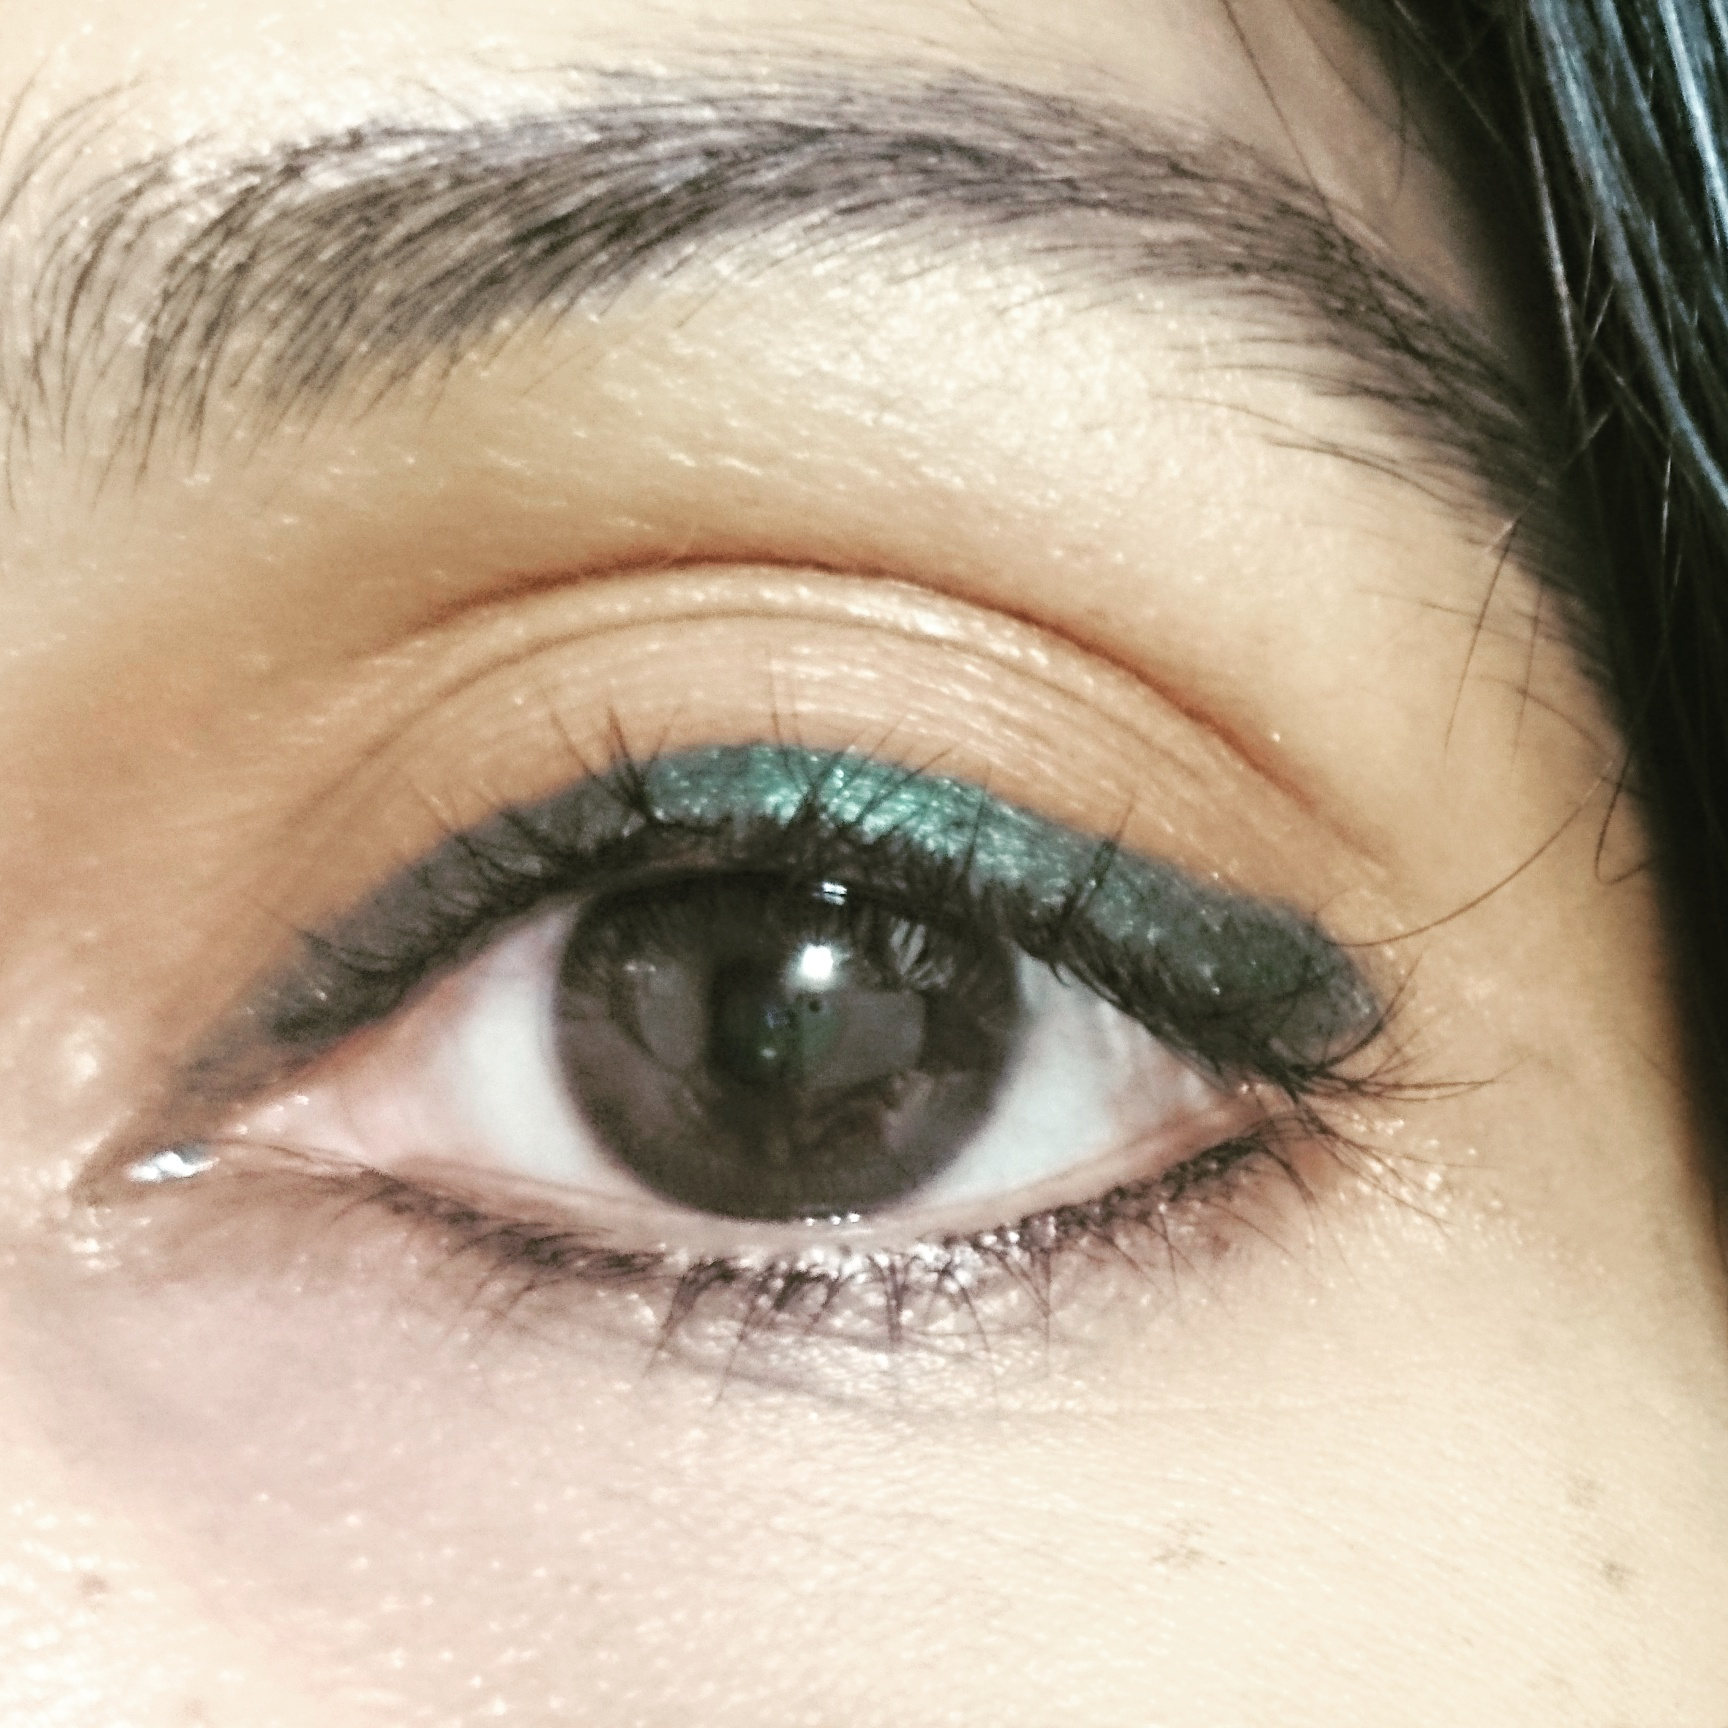 Maybelline Colossal Kohl in Jewelled Jade, Smoked Silver and Crushed Emerald - Review and swatches.